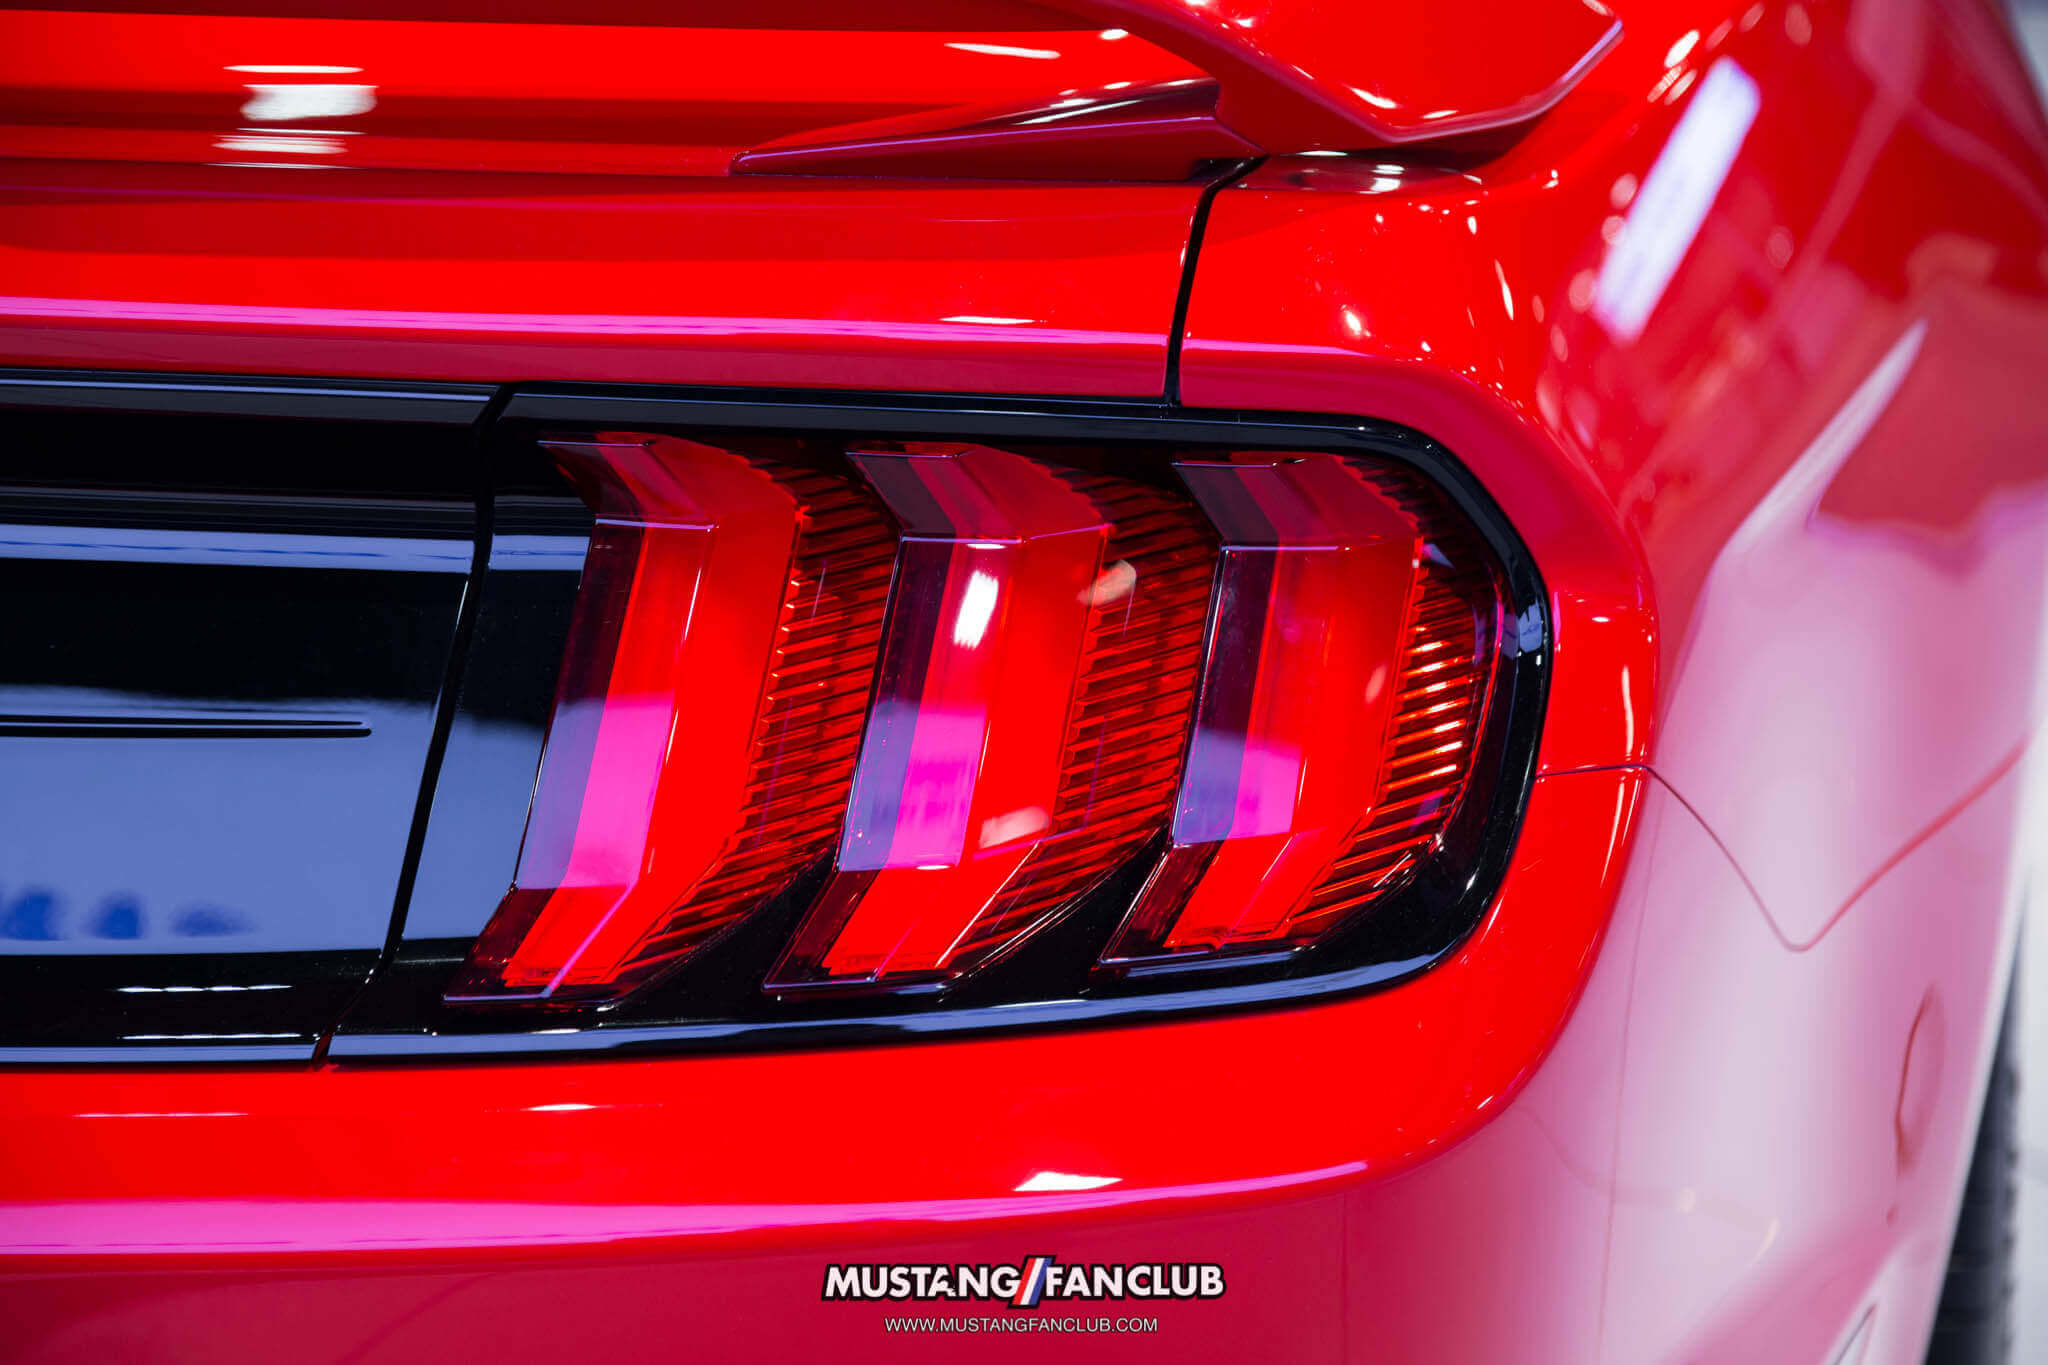 2018 18' 18 Mustang S550 mustangfanclub fan club atlanta international auto show 17 2017 AIAS17 AIAS2017 new race red gt500 mach 1 bullit gt performance package